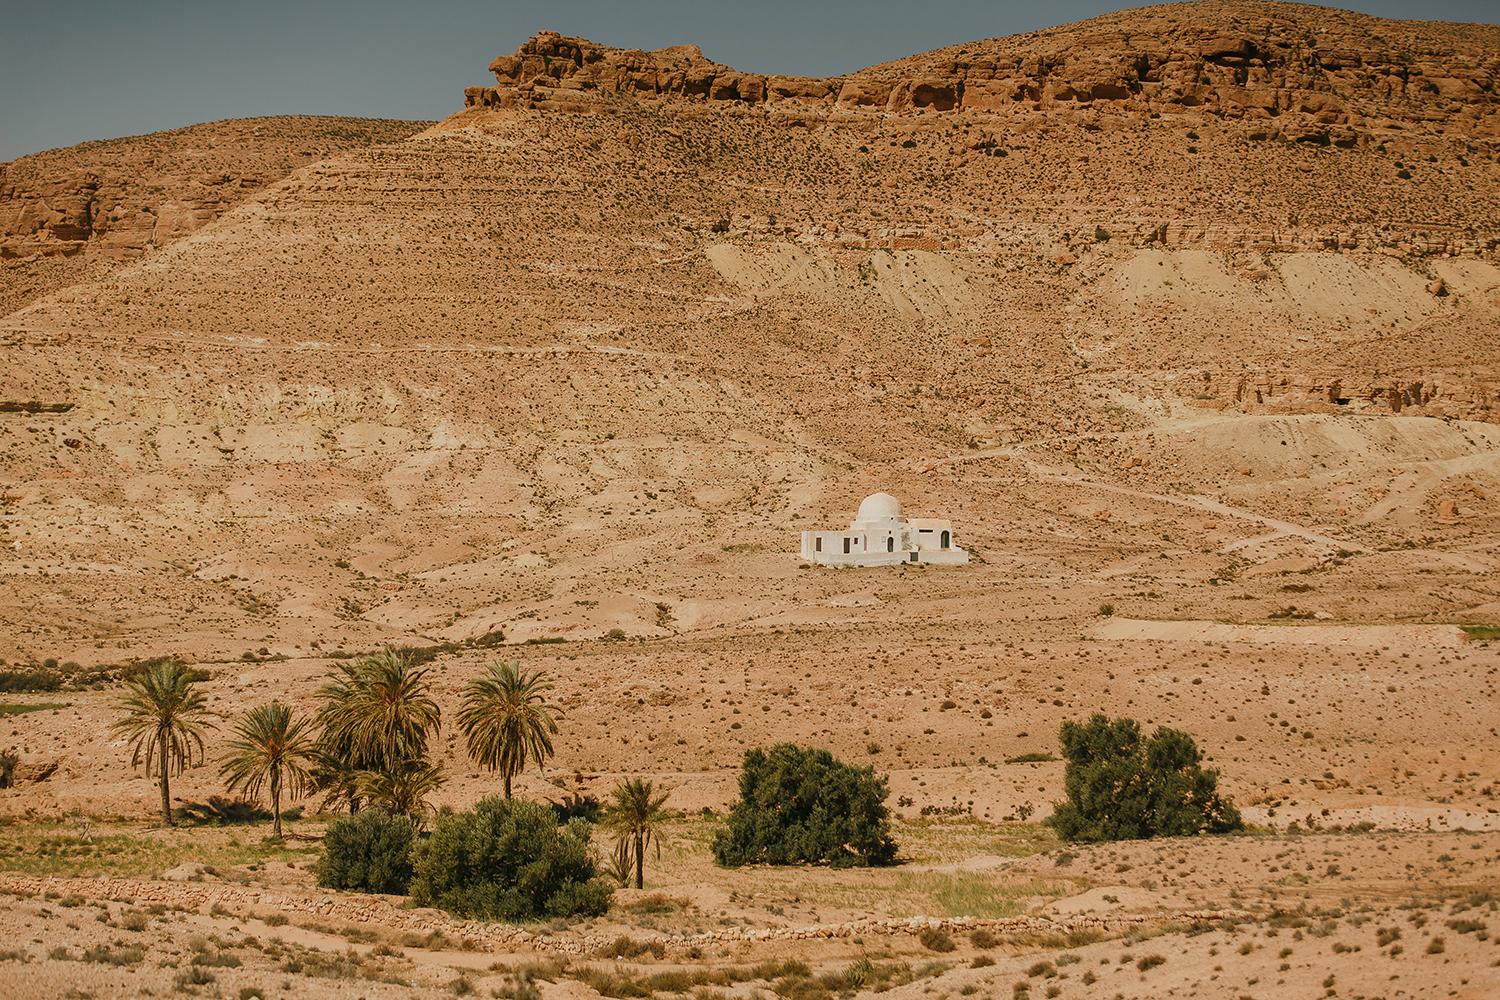 SN2_1844-sophie-narses-photographe-Tunisie-Voyage-book-shooting-geneve-mariage-suisse-famille-animaux-tirages-art-cours-photo-paysages-desert